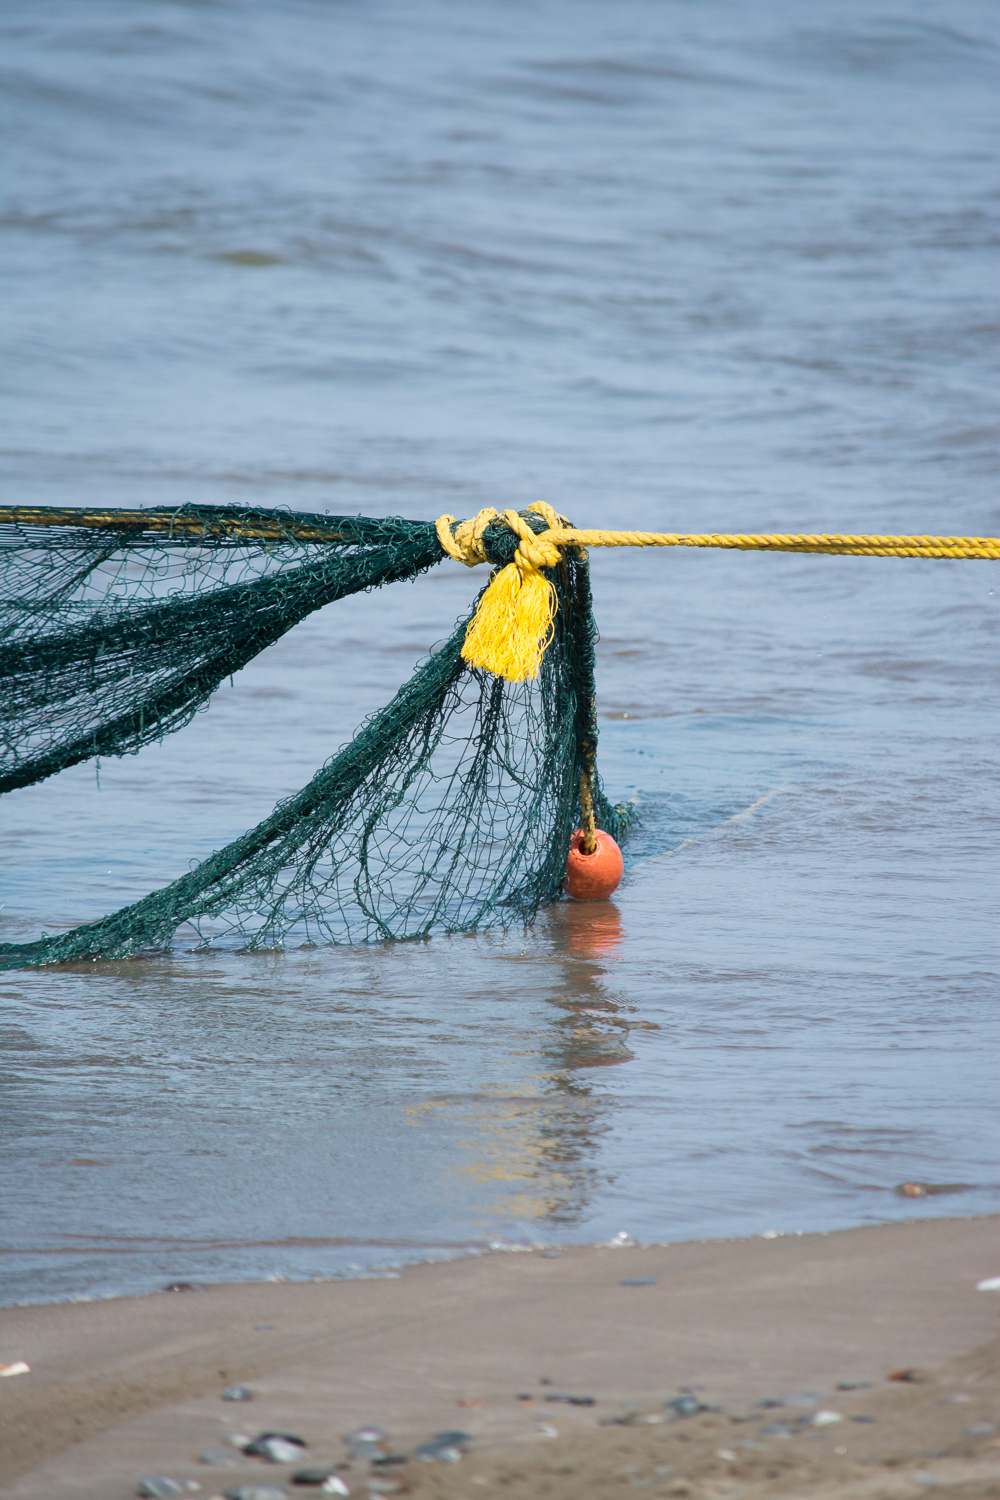 The haul rope attached to the net.